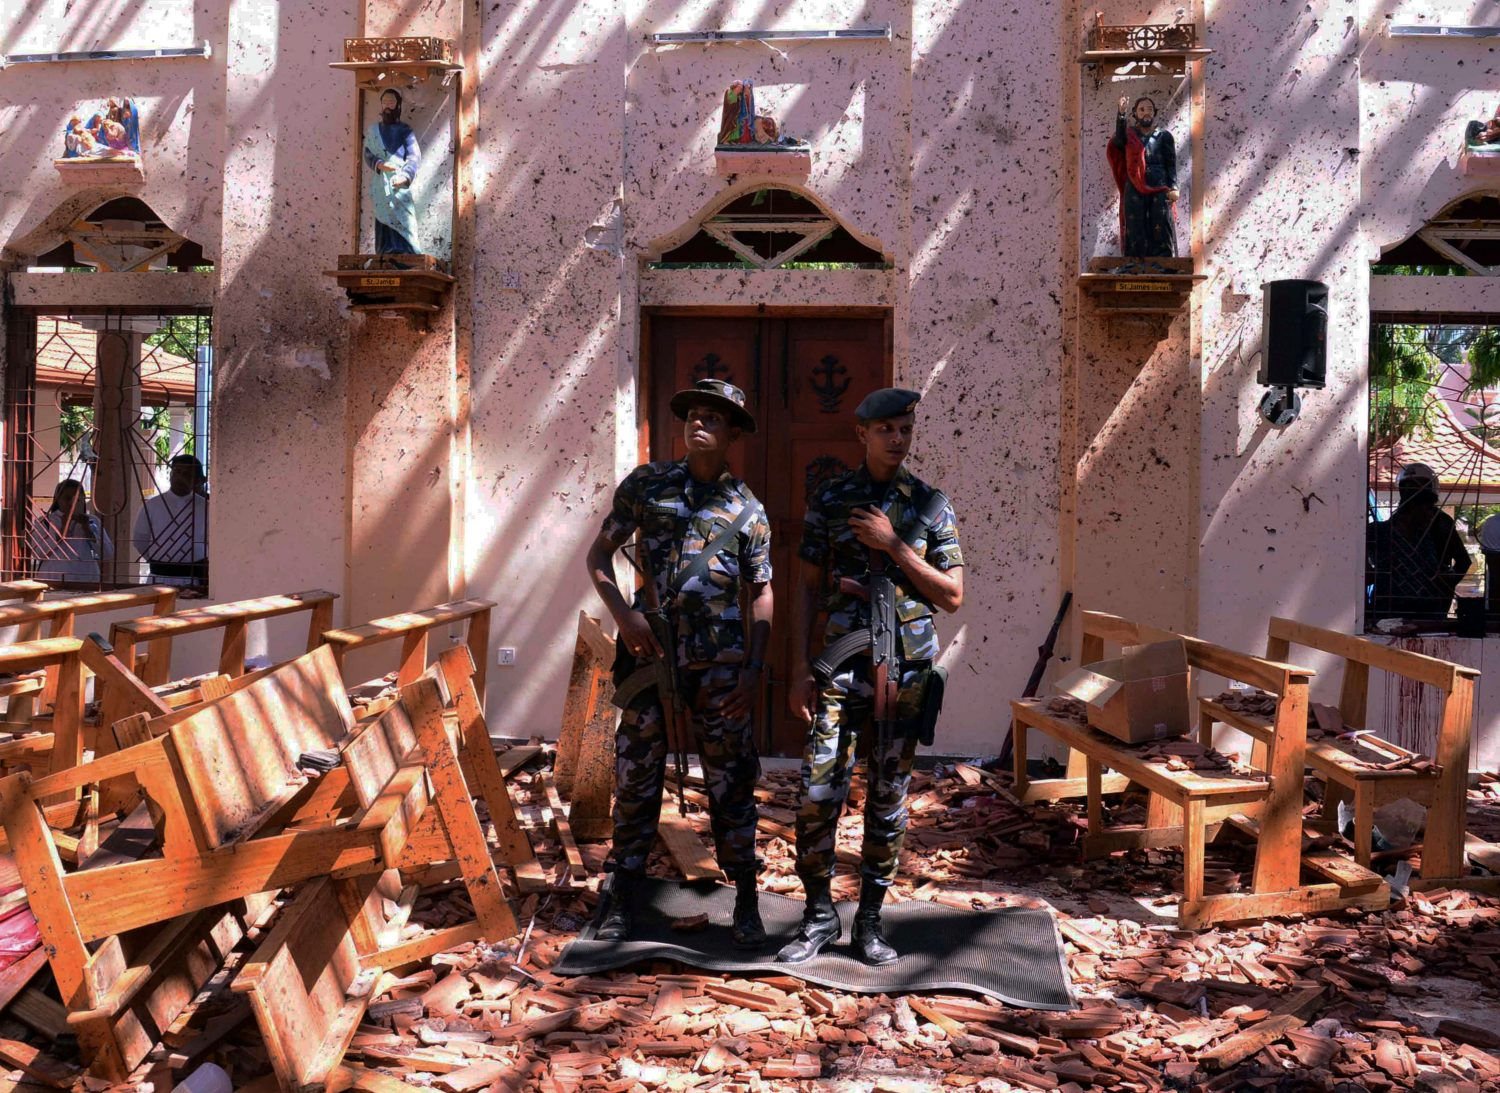 Sri Lankan military stand guard inside a church after an explosion in Negombo, Sri Lanka April 21, 2019. REUTERS/Stringer